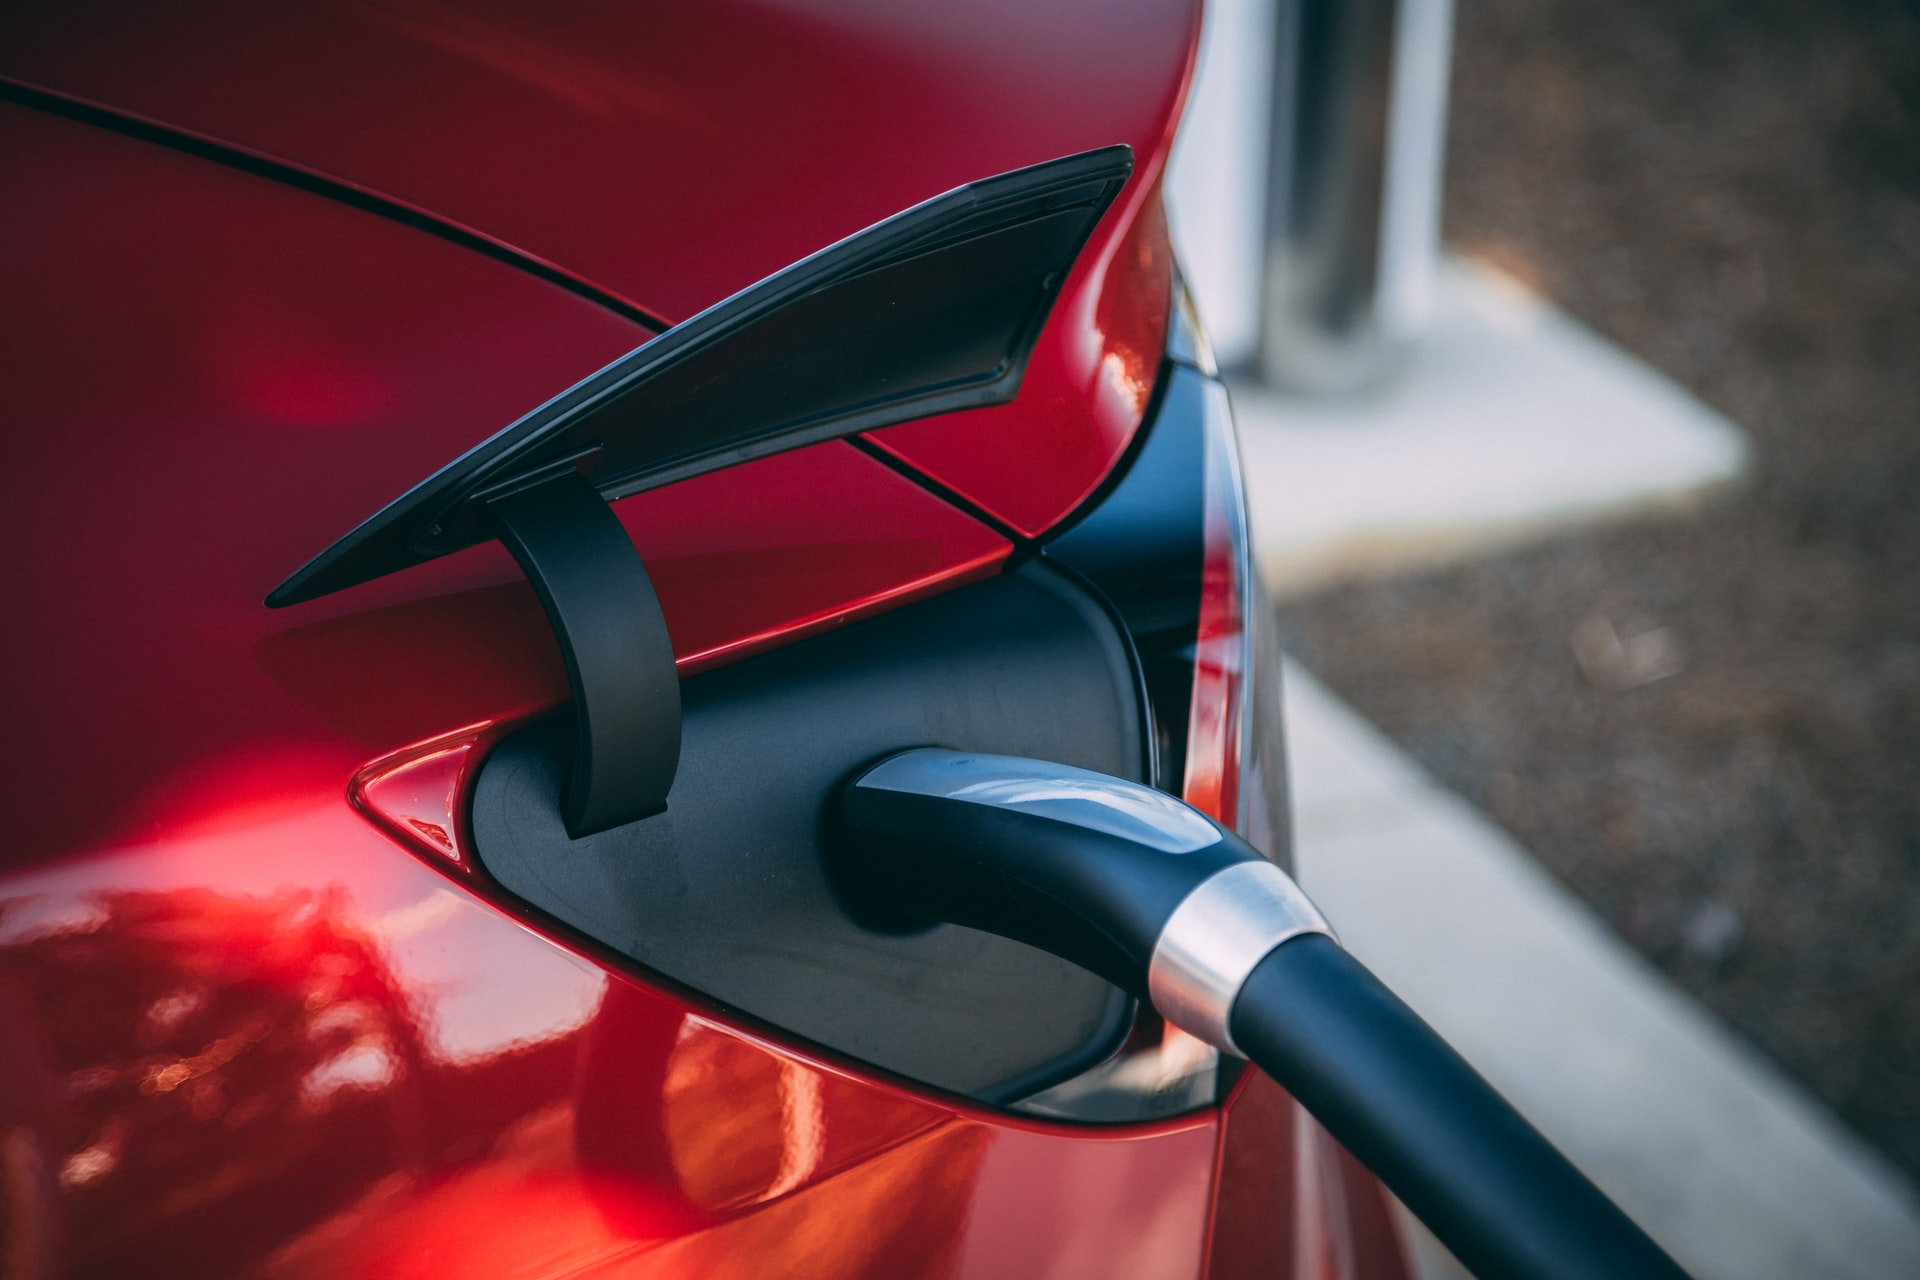 EVs are Brand New, Relatively Speaking… But Could They Be Used?